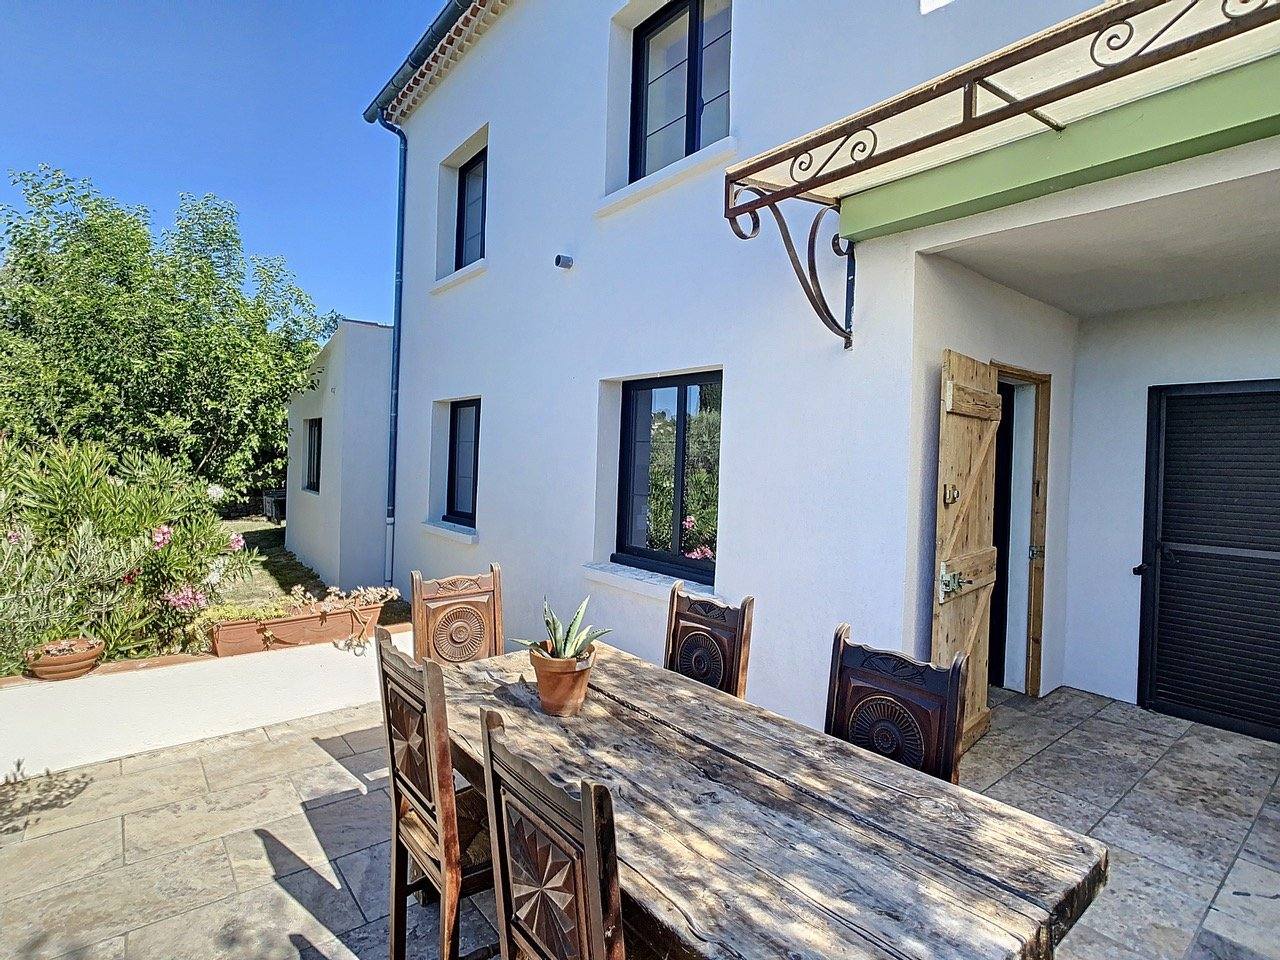 Villa with pool and wide views, walking distance from Cotignac